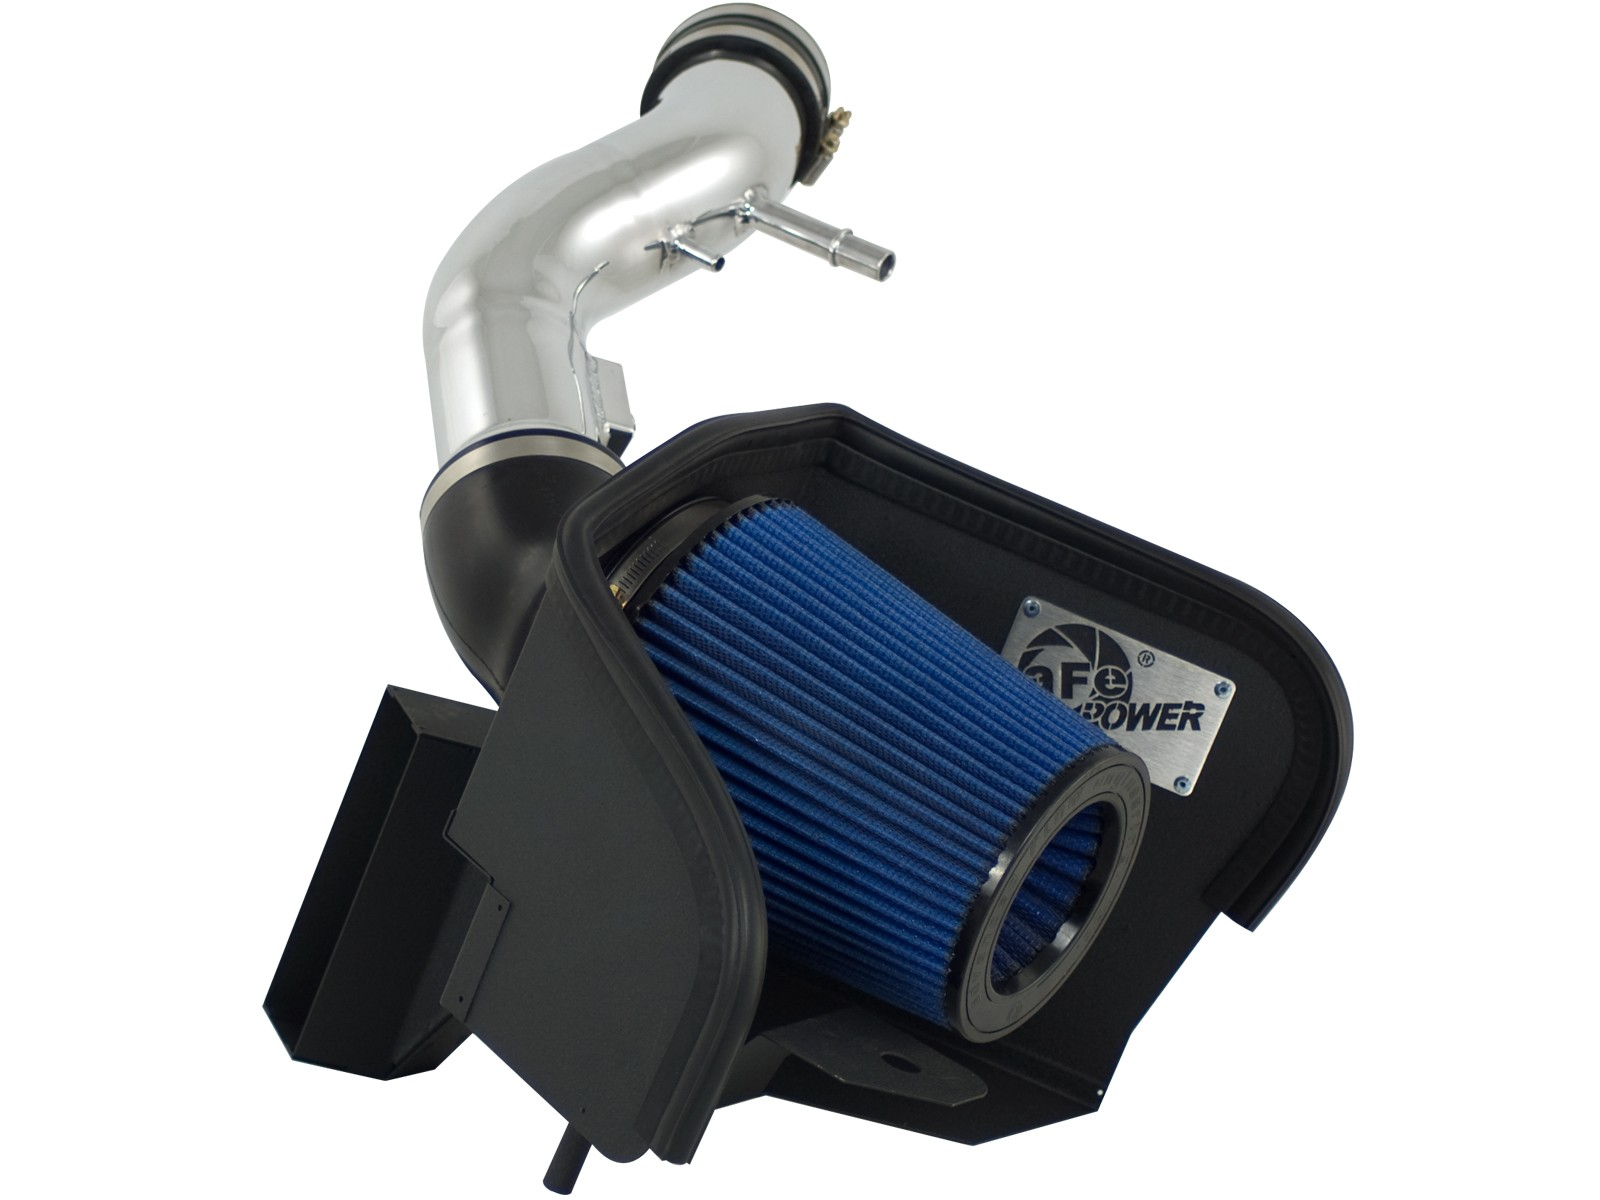 aFe POWER 54-12102-P Magnum FORCE Stage-2 Pro 5R Cold Air Intake System